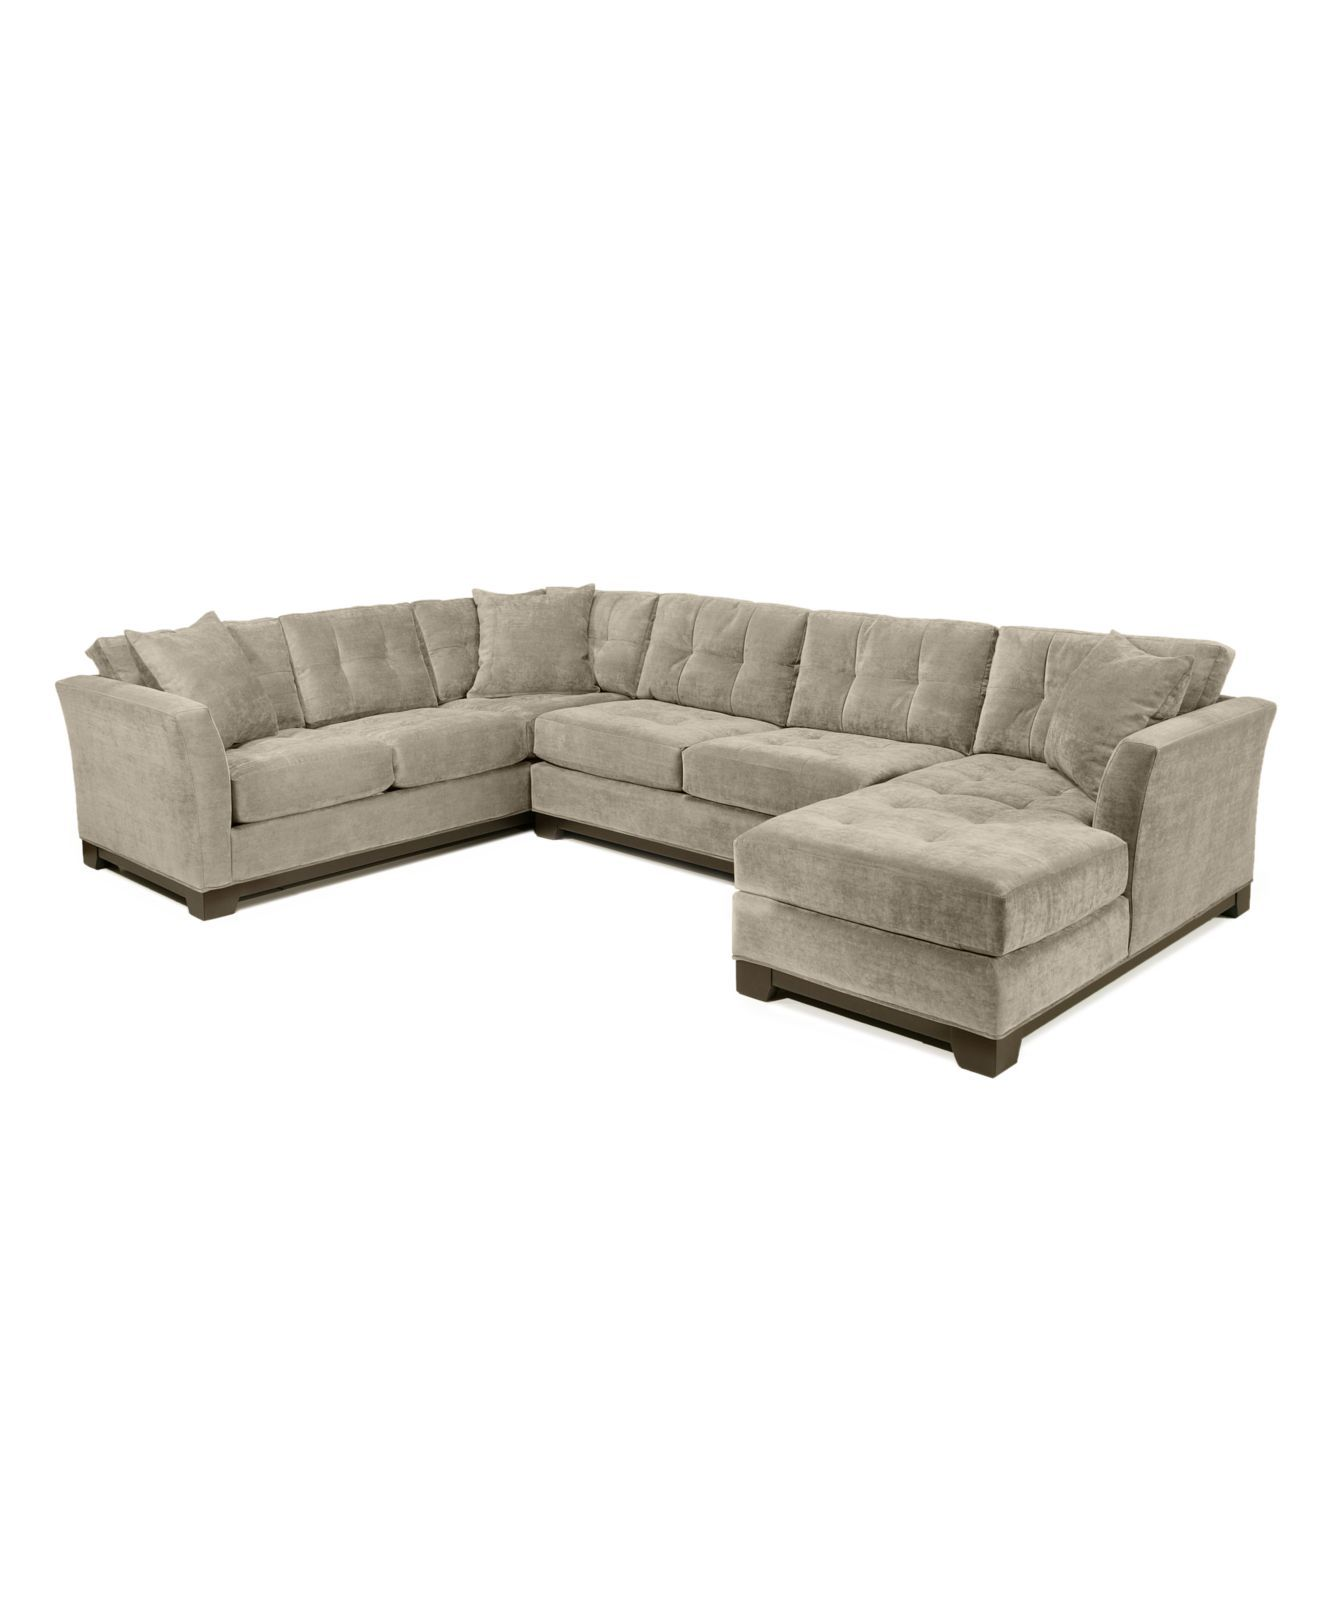 macy s elliot sofa how to dump old fabric microfiber 3 piece chaise sectional